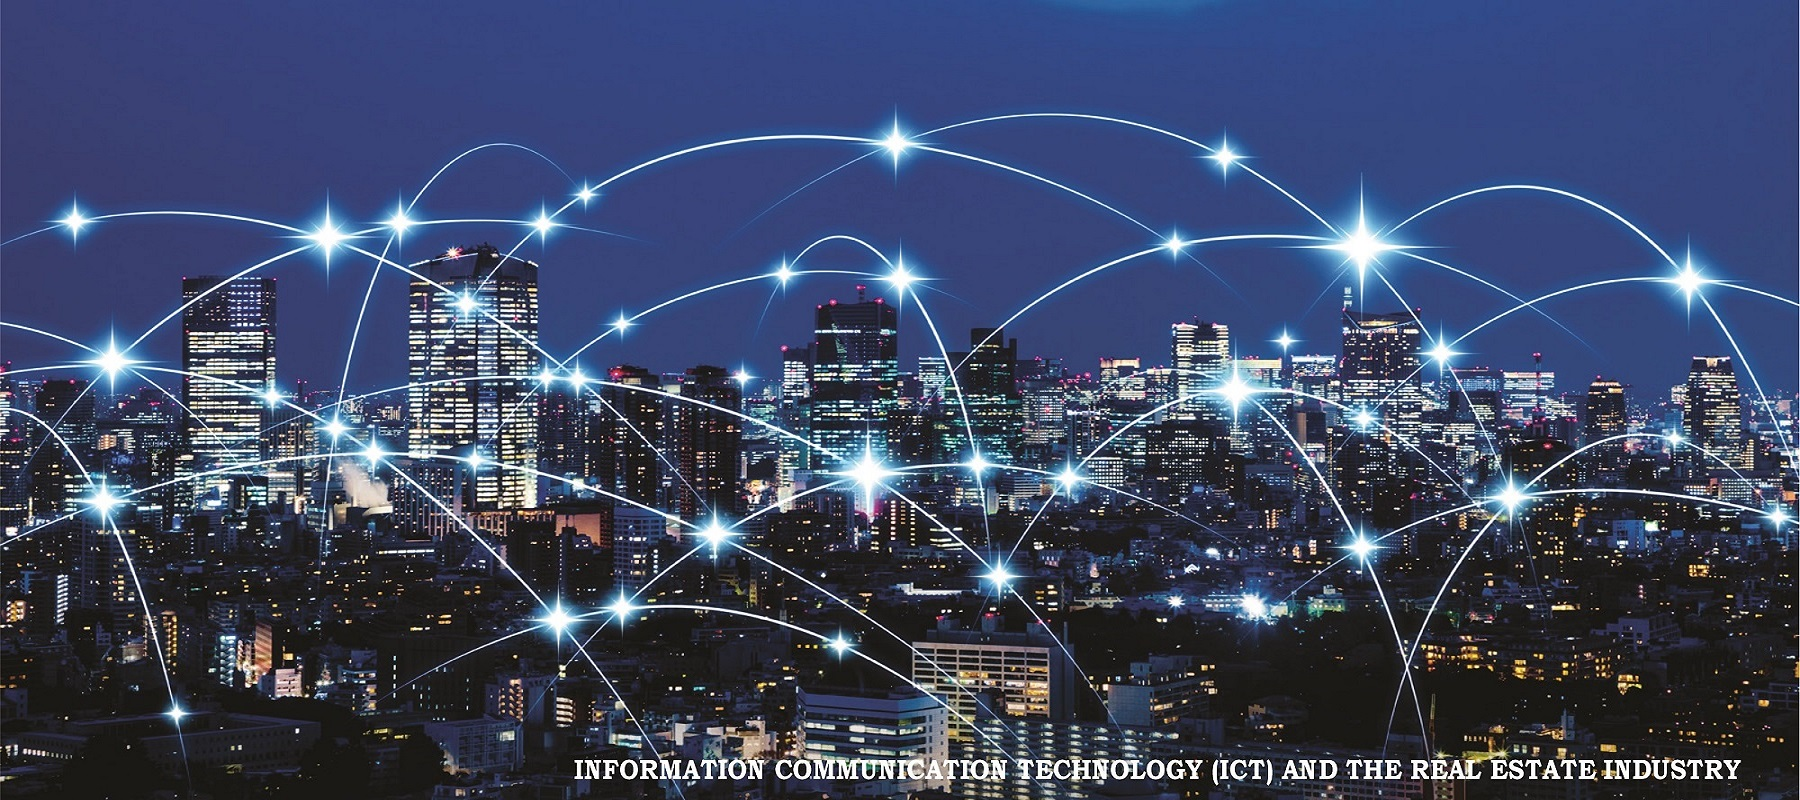 ICT Is Key; Taking The Real Estate Industry Online.